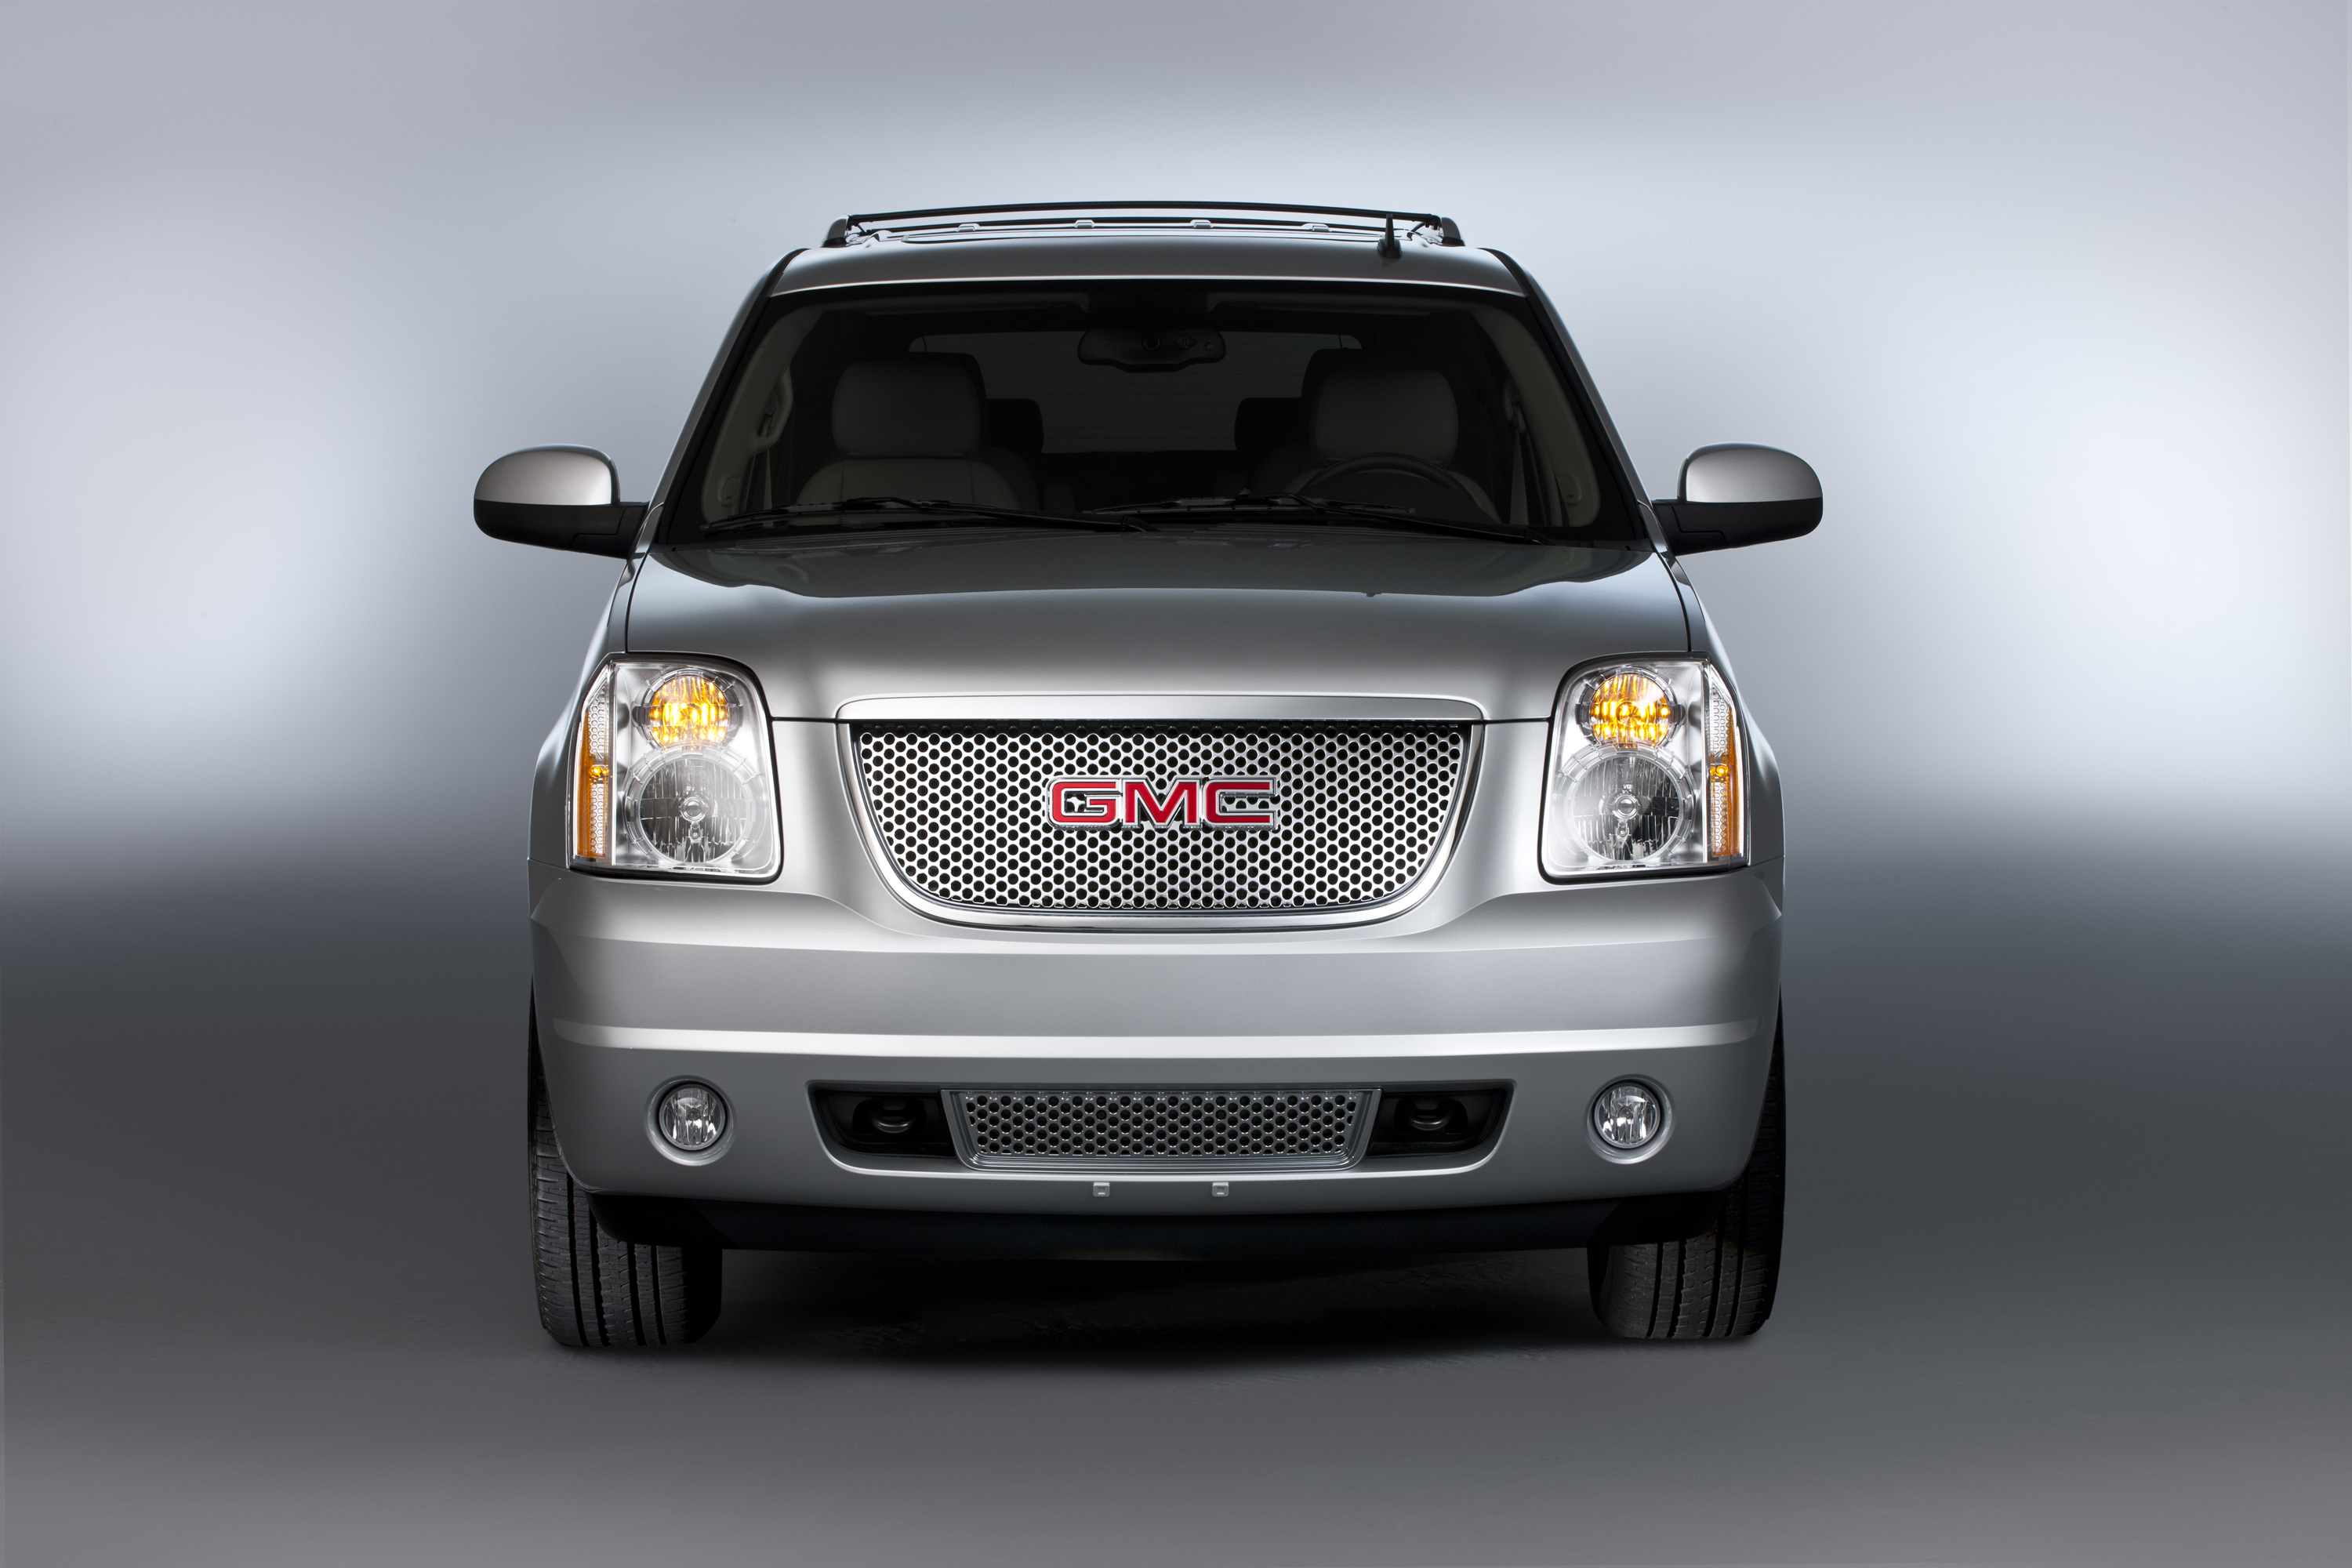 images corporate us introduces new yukon gm denali all the pages newsroom more jcr en photos rightpar news states galleryphotogrid gmc united media detail capable me content